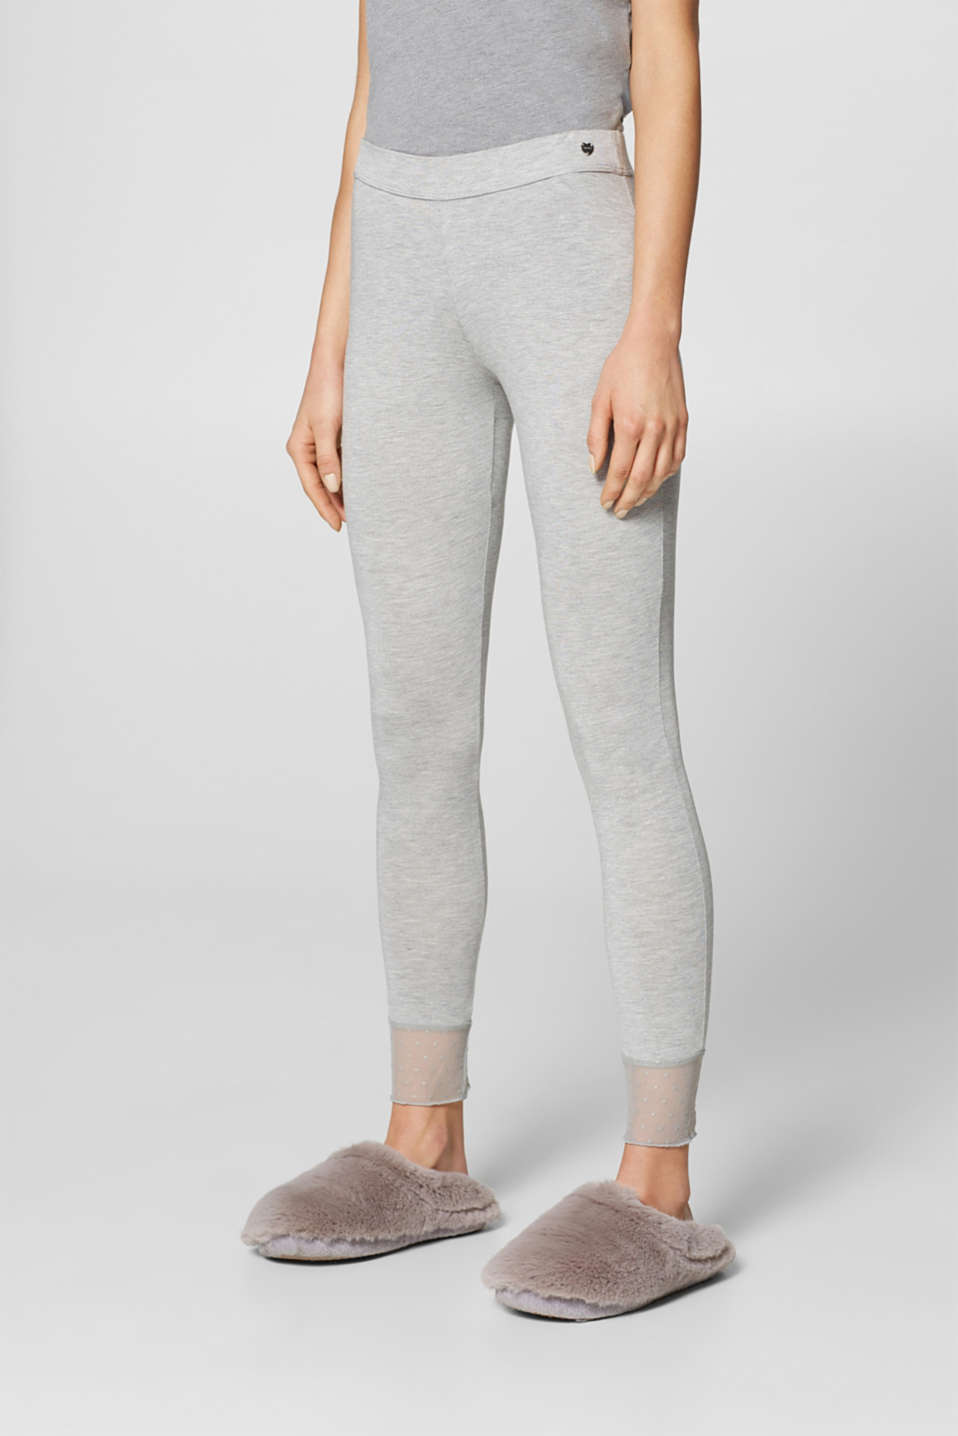 Esprit - Pyjama bottoms with tulle details